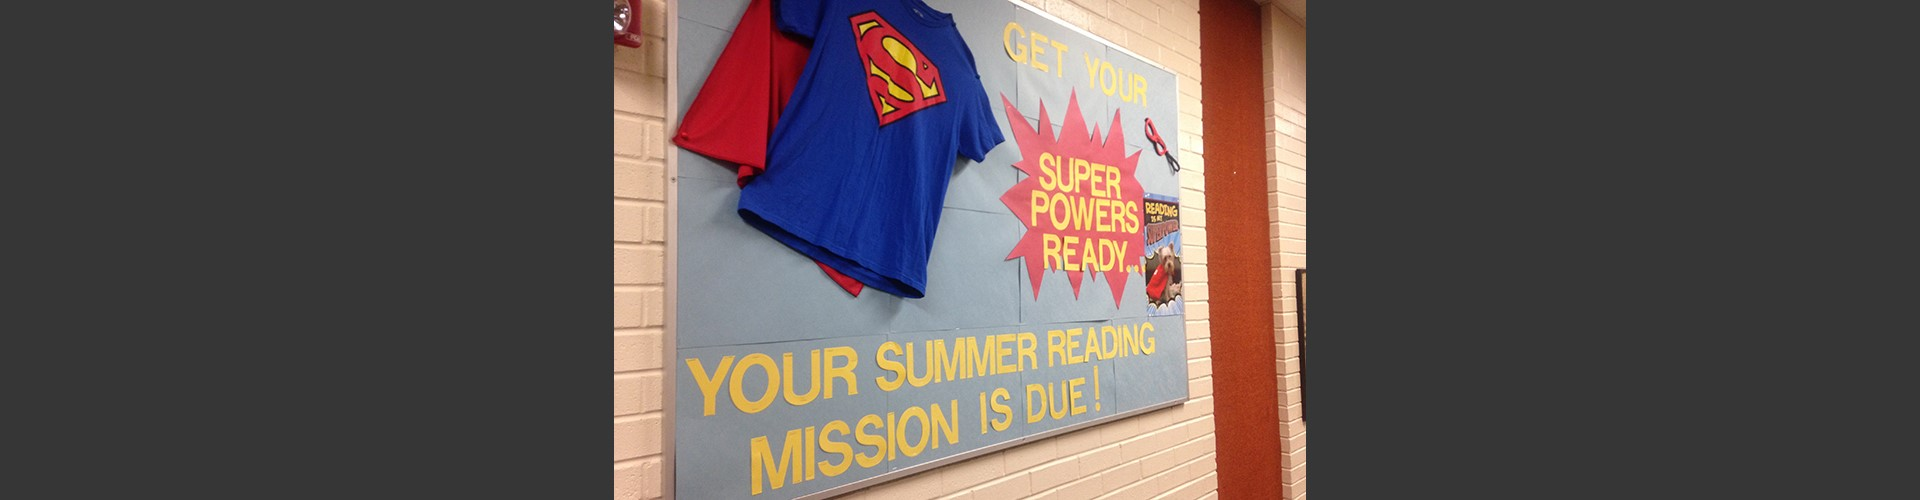 Display for summer reading mission.